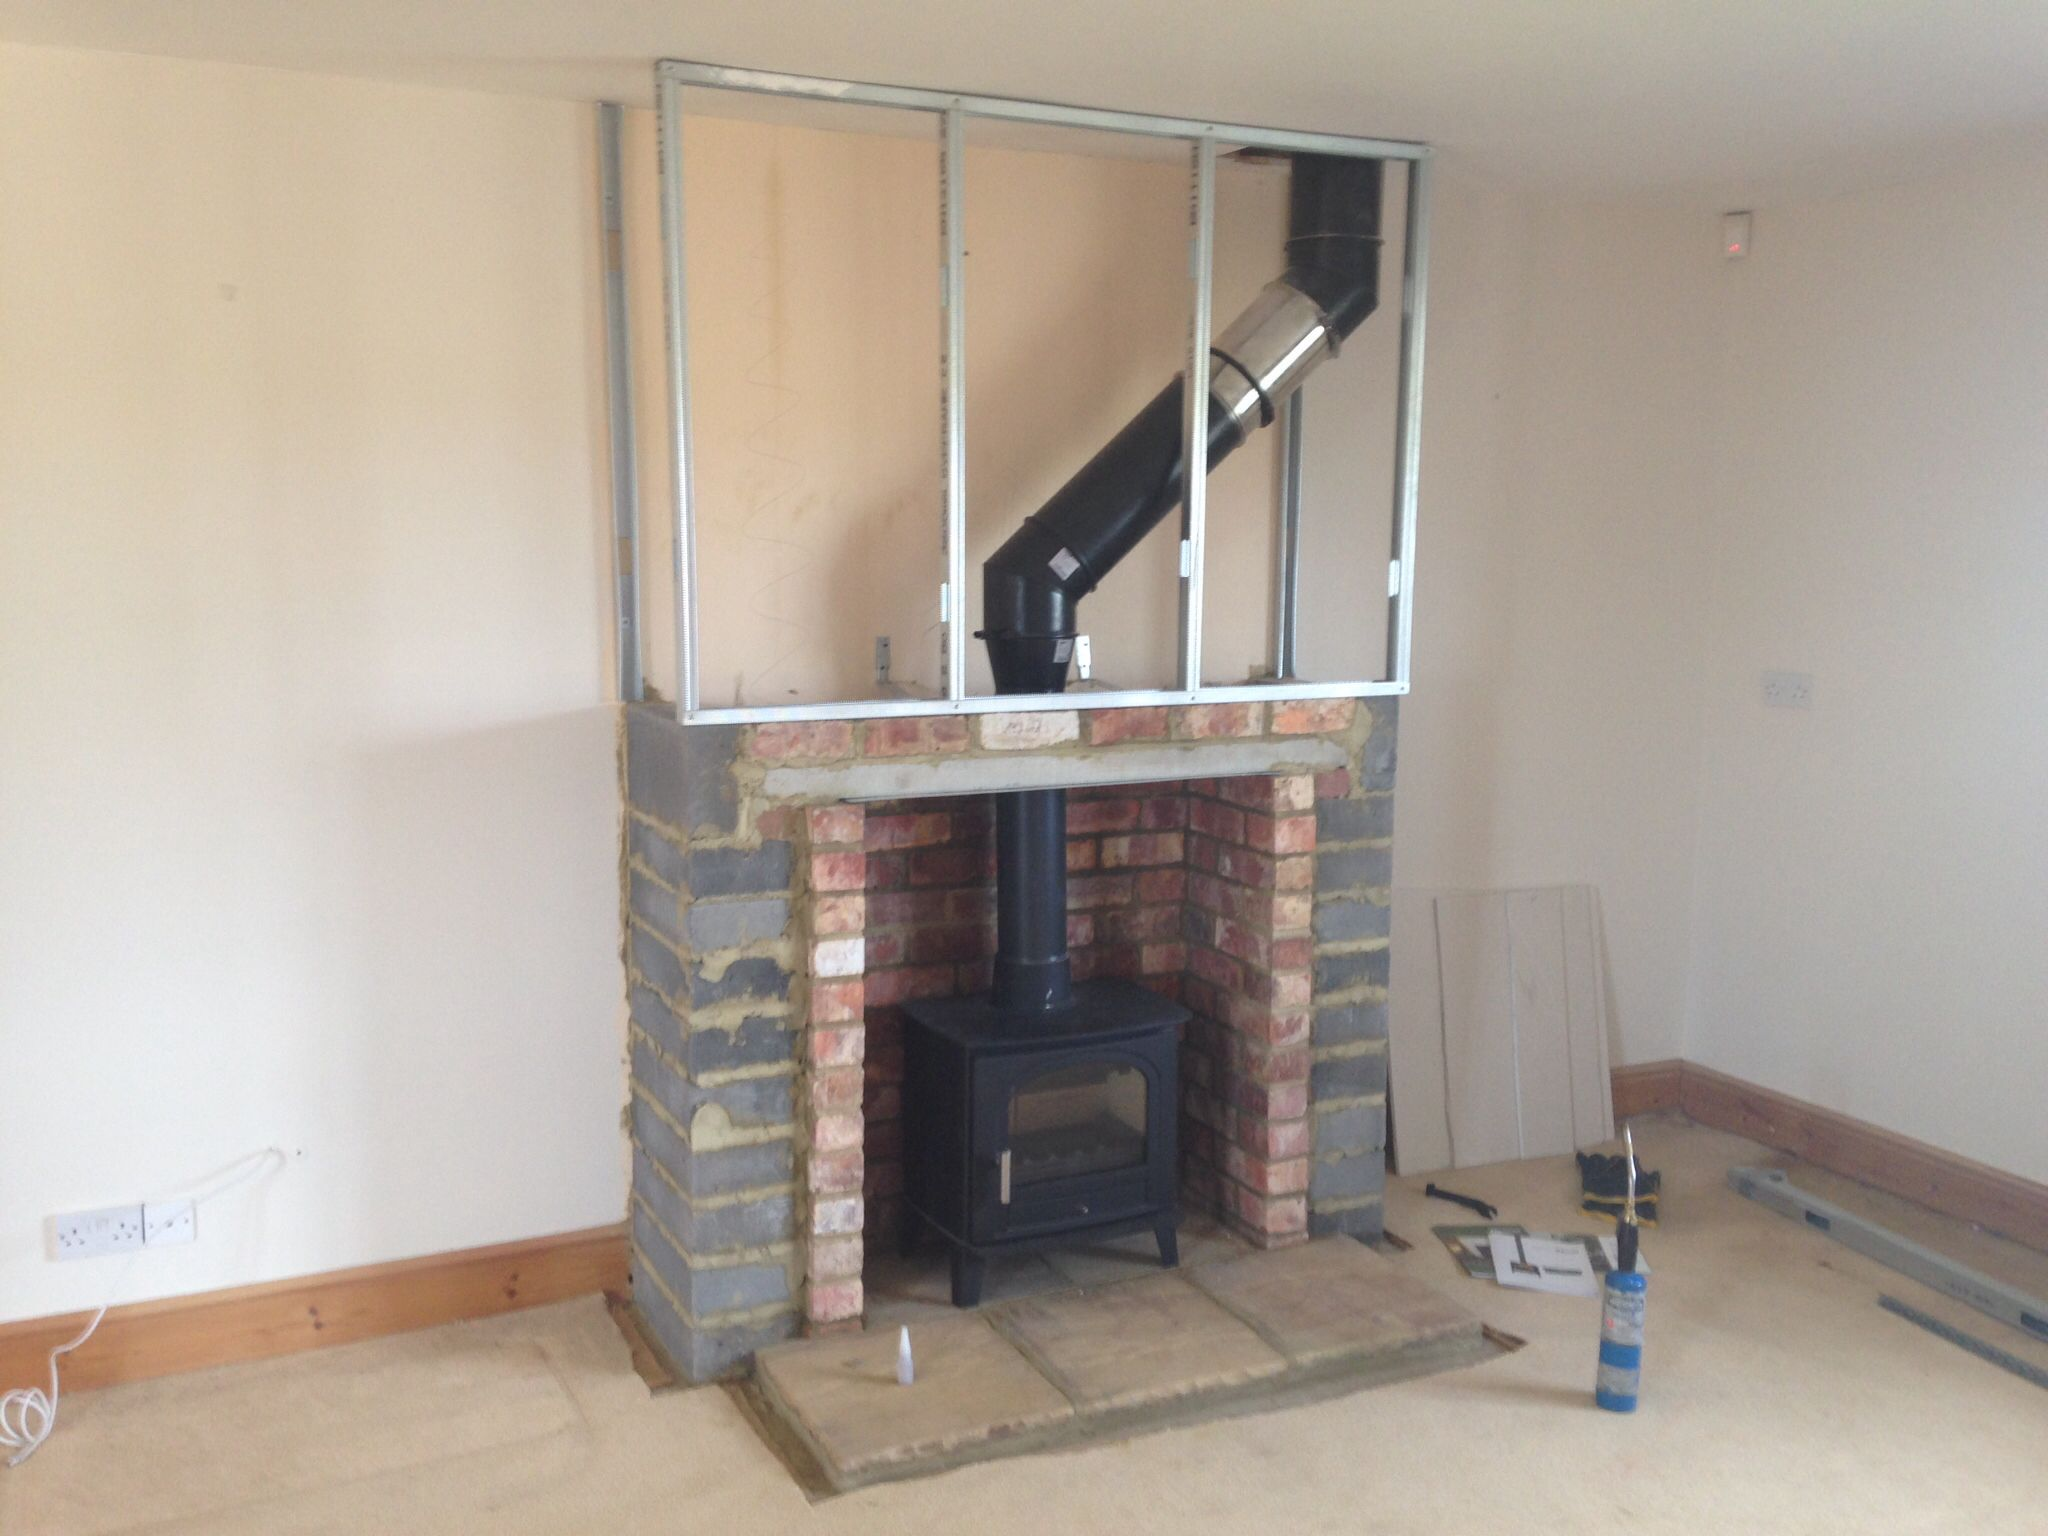 Inserts fireplace accessories new york by bowden s fireside - False Chimney Breast Fitted 2014 By Colesforfires Co Uk More